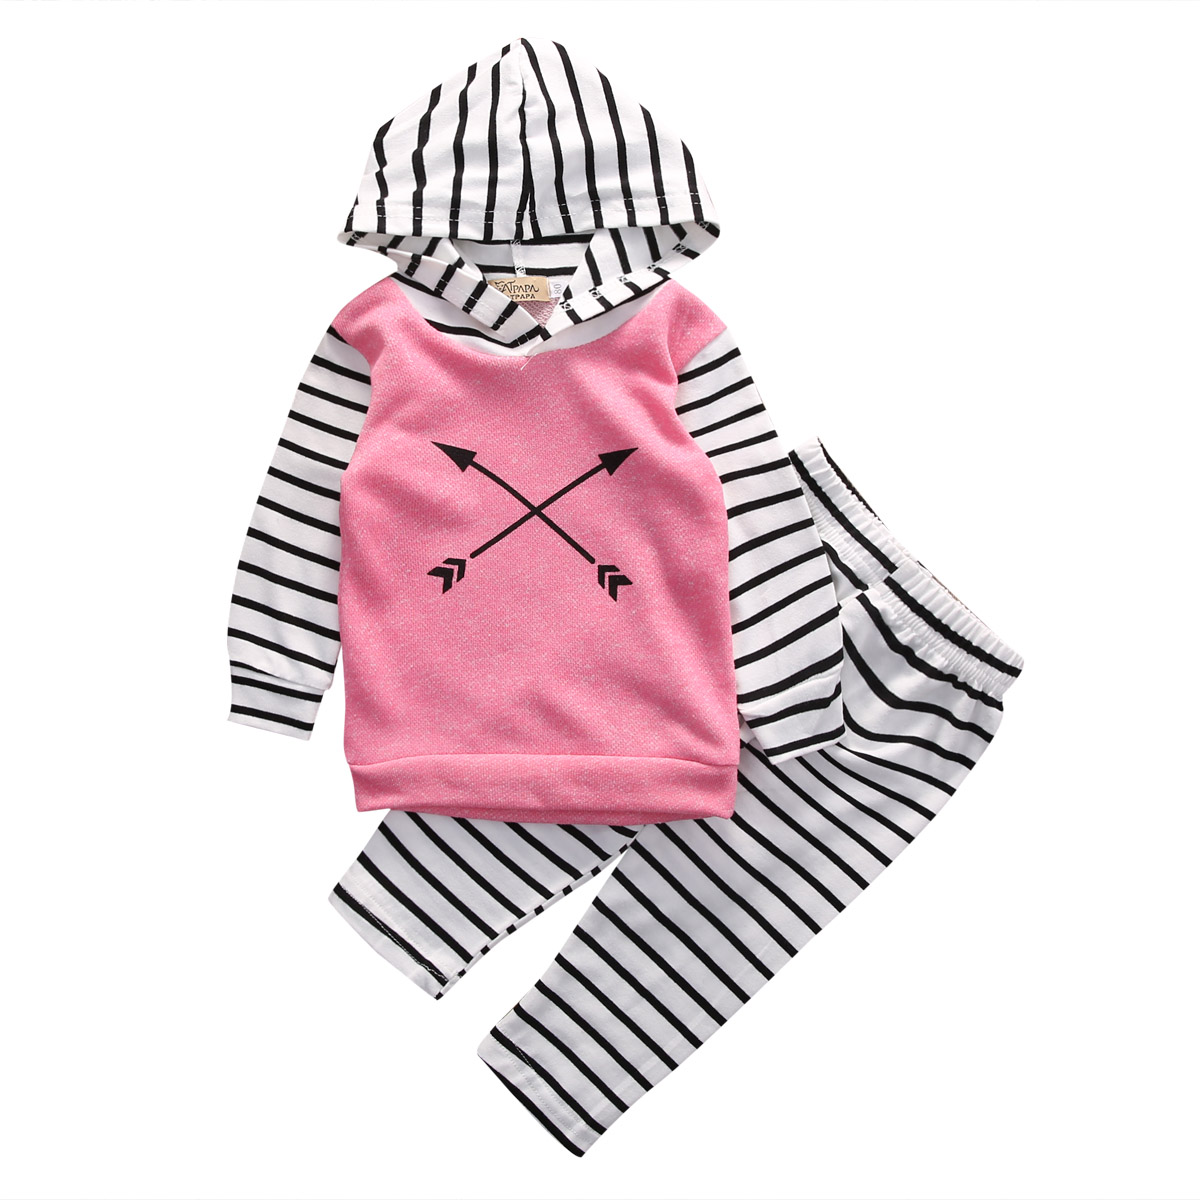 2PCS Set Newborn Baby Clothes Hooded Sweatshirt Coat Tops +Striped Pant Trouser Outfit Bebek Giyim Kids Clothing Set Bebes Suit 2016 new casual baby girl clothes 2pcs autumn clothing set floral hooded top pant outfits newborn bebek giyim 0 24m